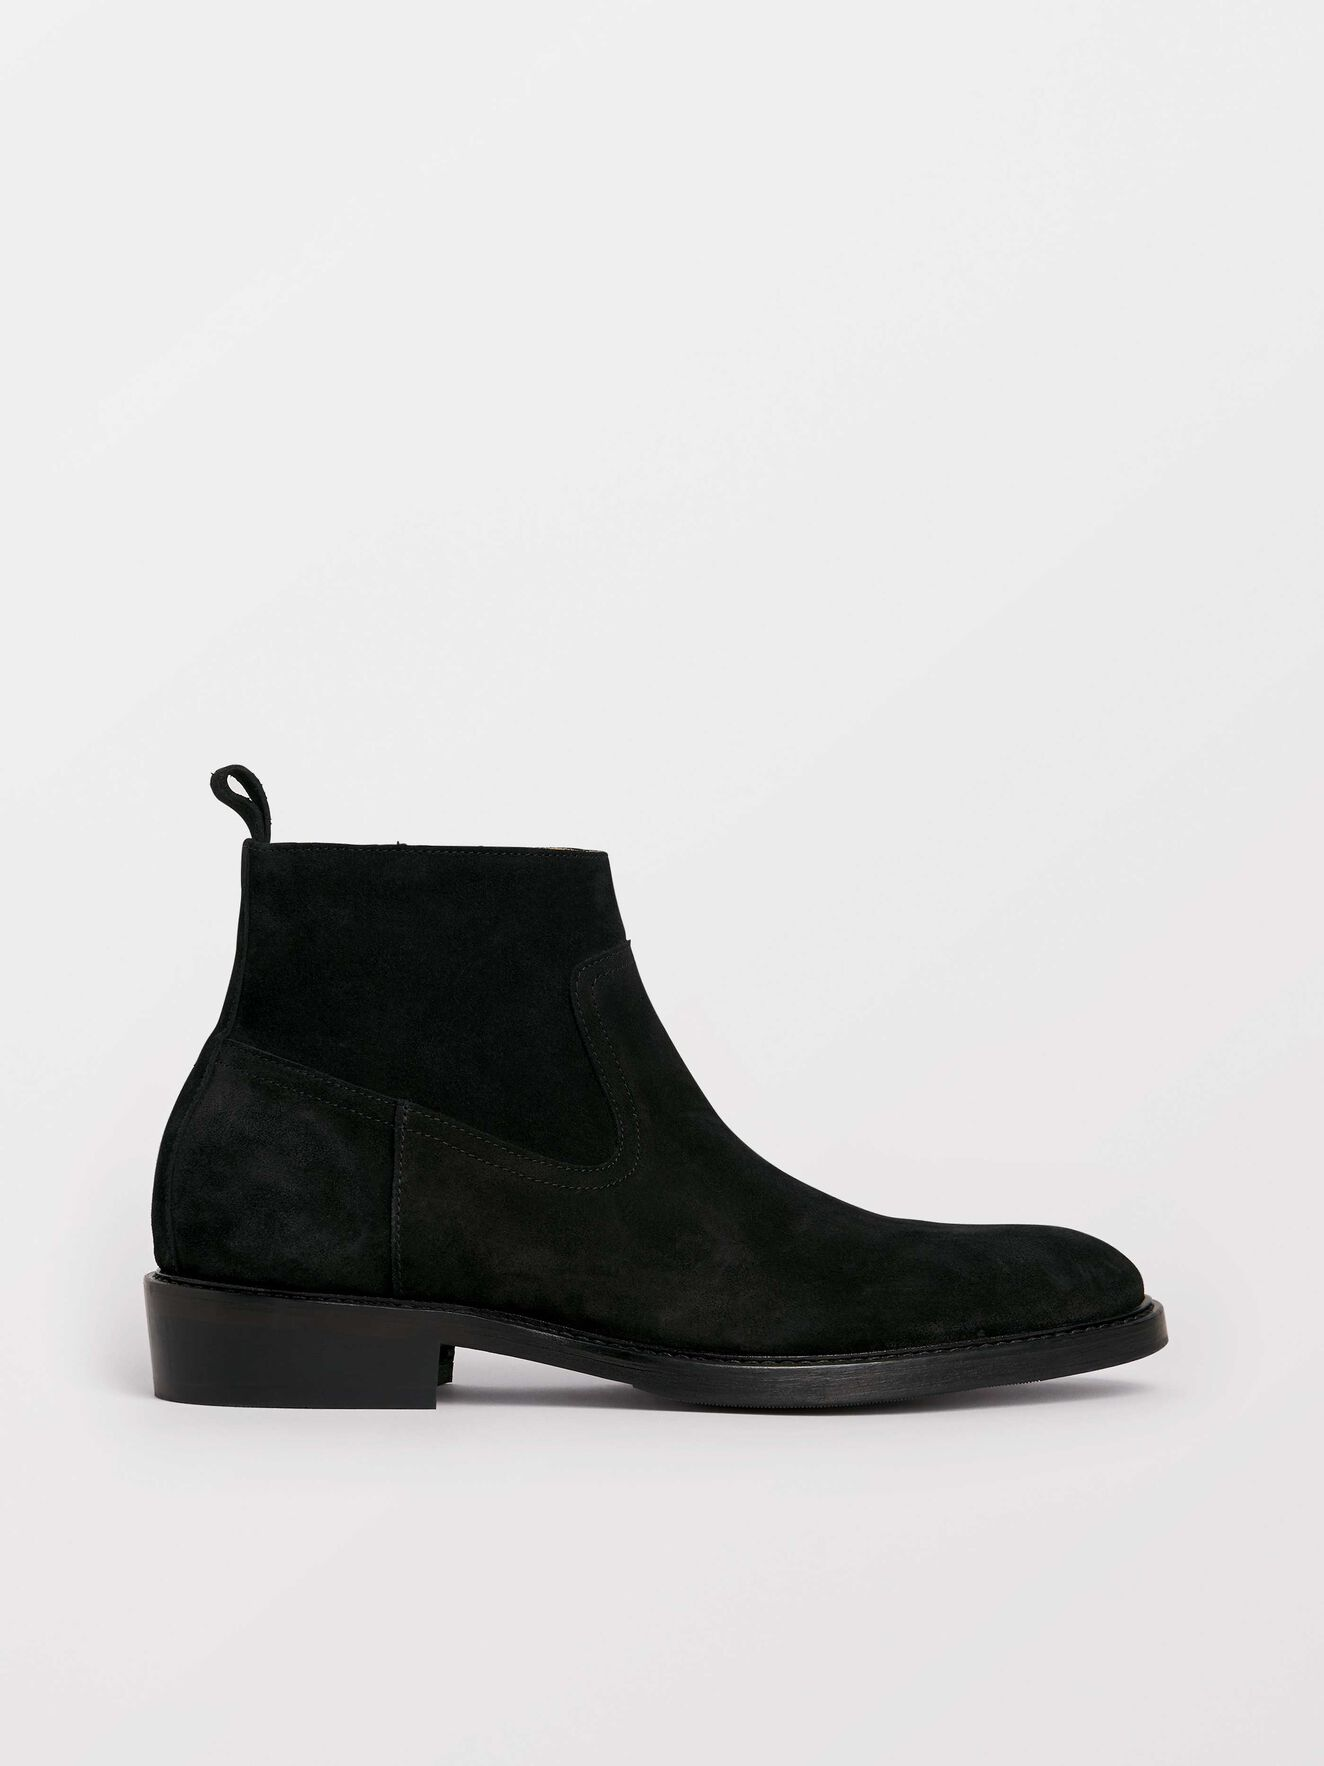 Barant S Stiefel in Black from Tiger of Sweden